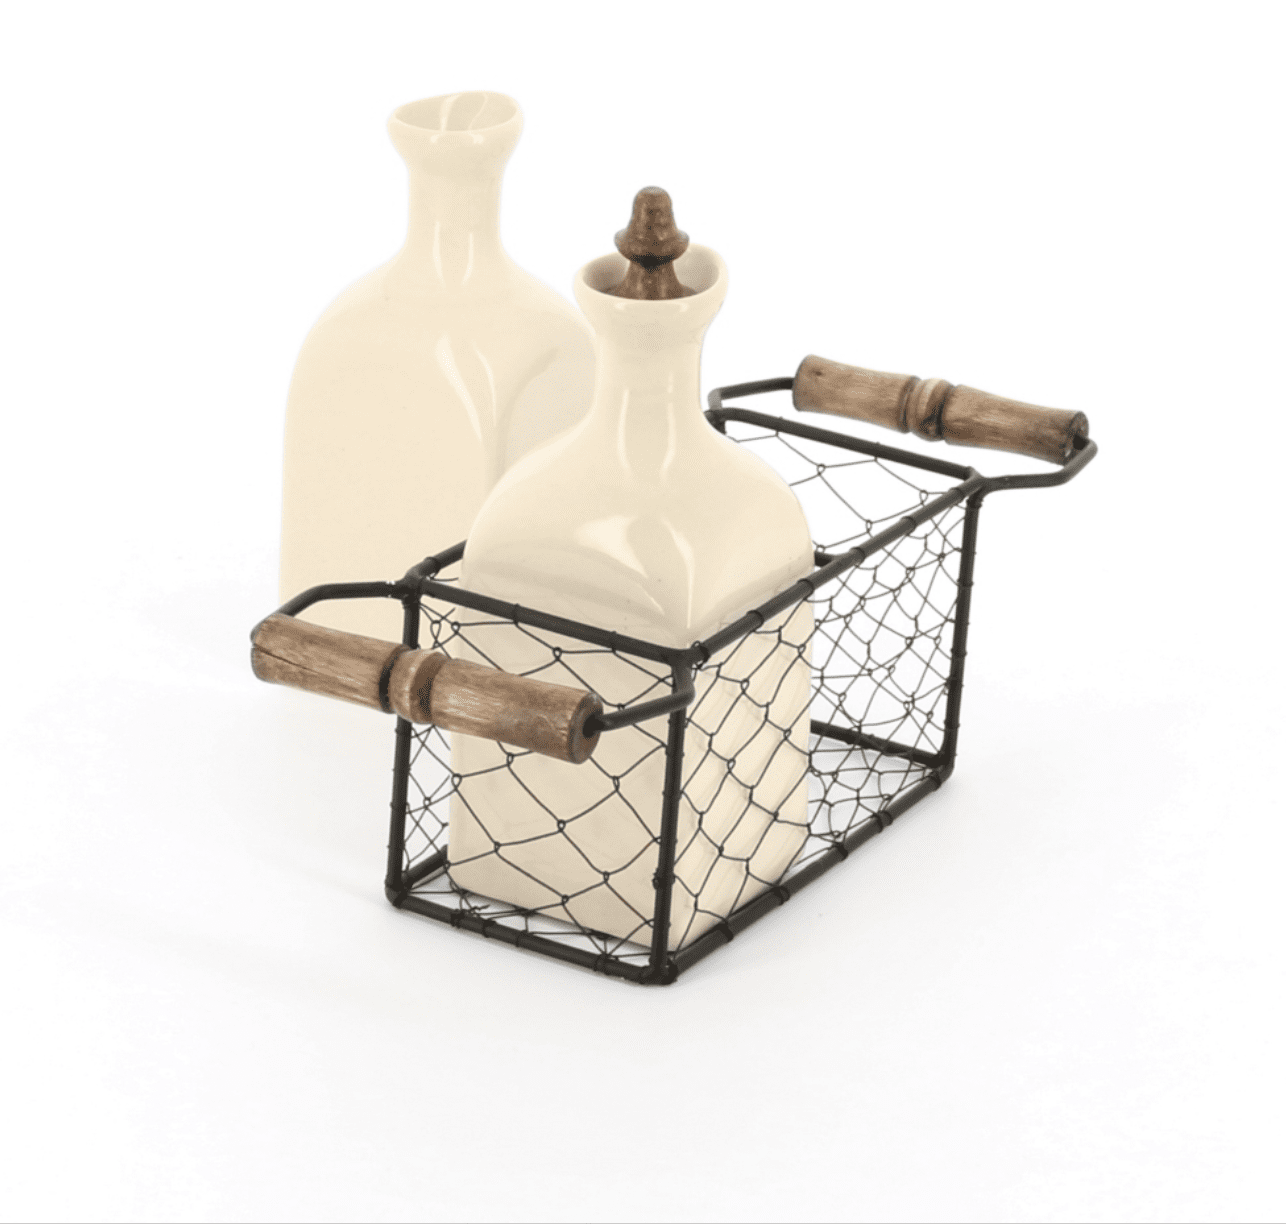 Country kitchen oil and vinegar ceramic set in a wire 2 handled carrier with wooden knobs, side view